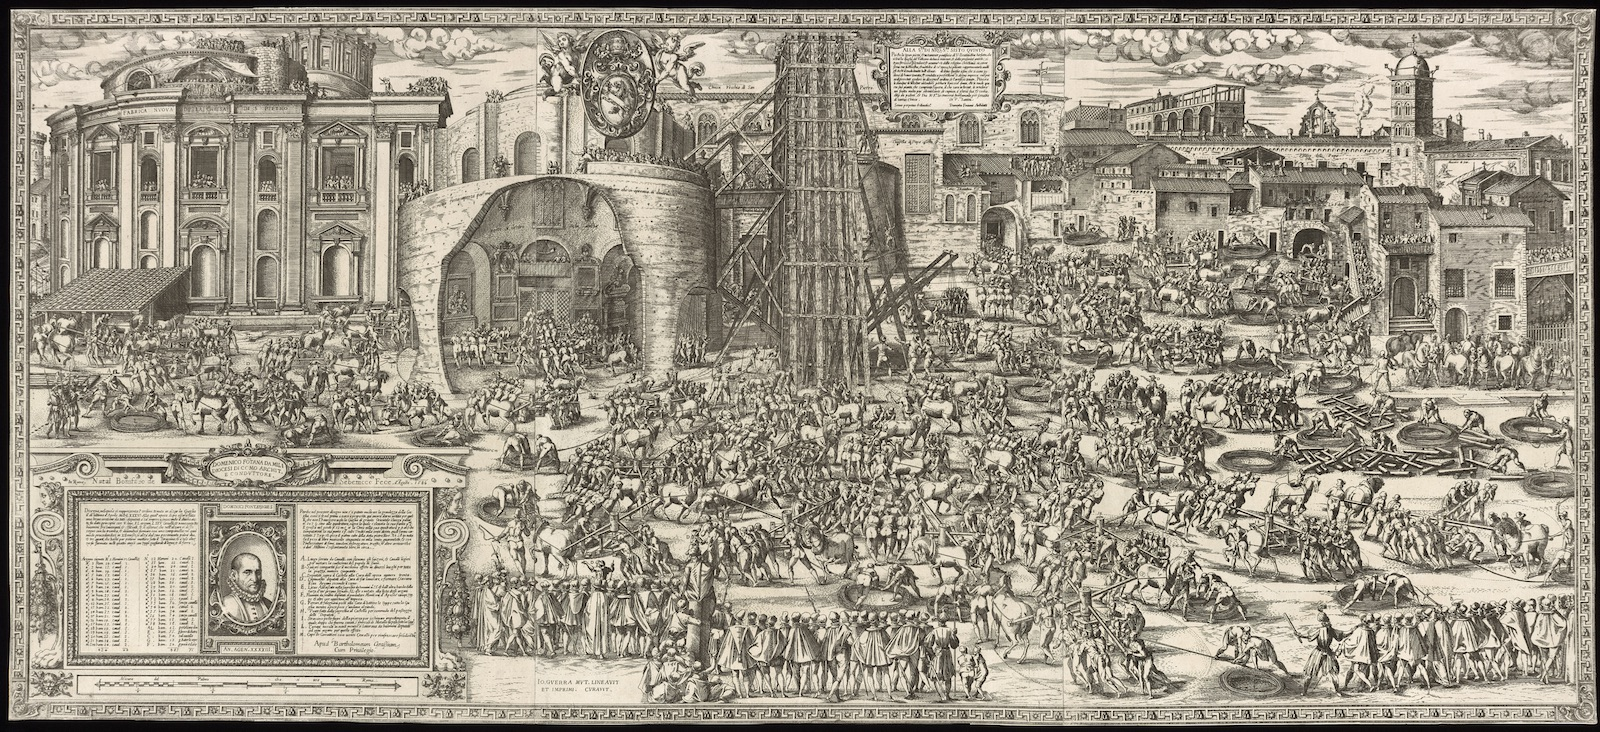 Engraving showing workers lowering a massive obelisk using wooden scaffolding